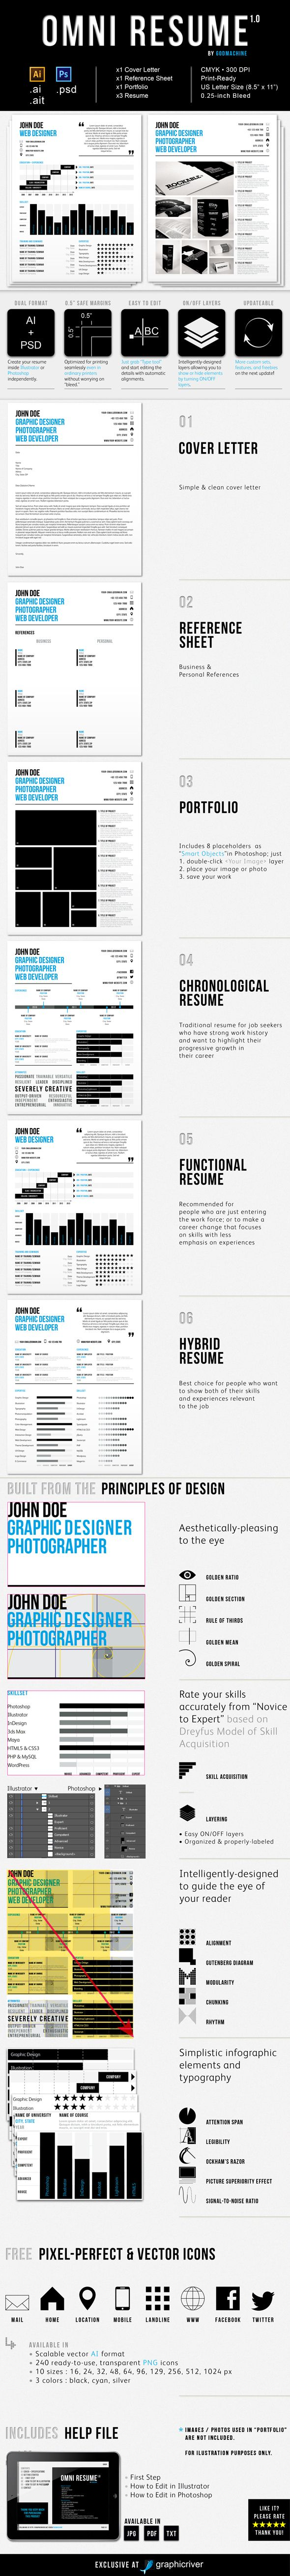 4-piece resume set with three (3) different resumes to choose from (chronological, functional, hybrid), plus, cover letter, reference sheet, and mini portfolio.